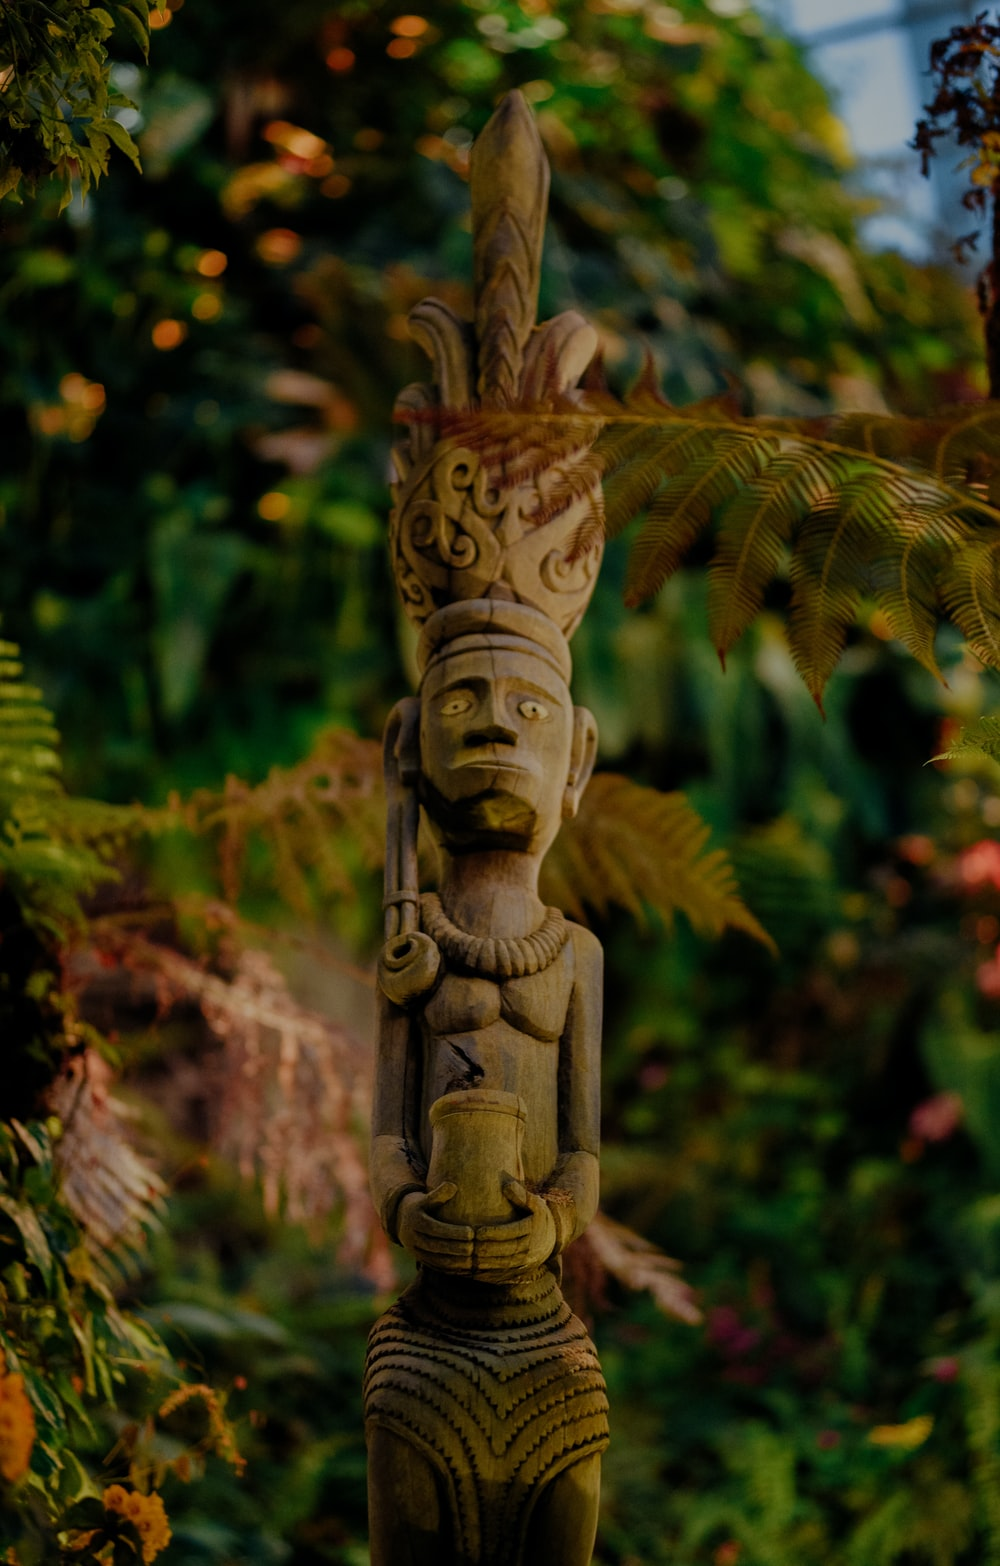 brown wooden statue near green plants during daytime